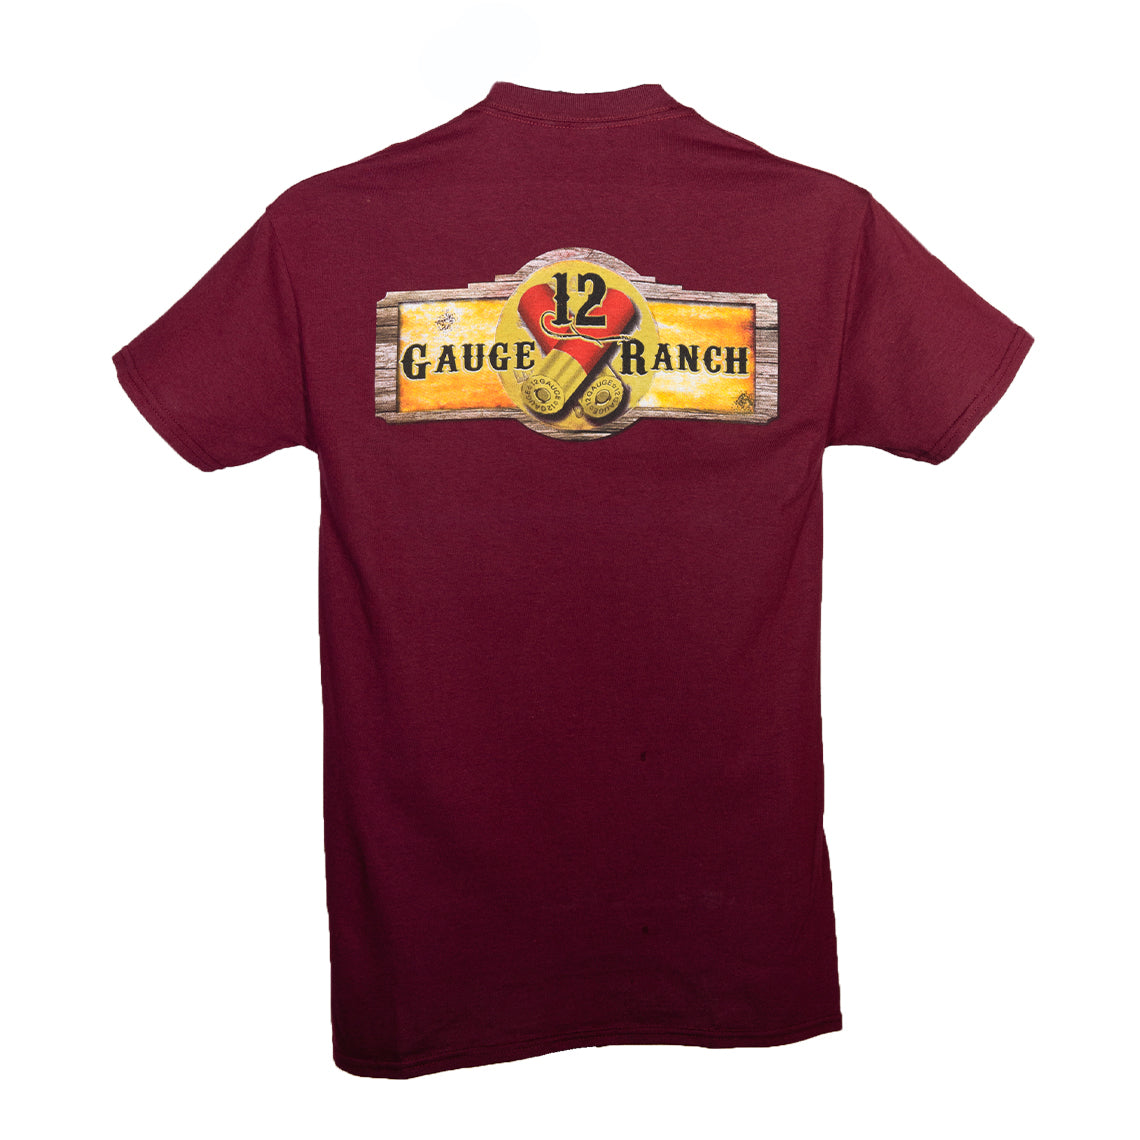 12 Gauge Ranch Maroon Short Sleeve Shirt (SSGMR101), Apparel, 12 Gauge Ranch, 12 Gauge Ranch Ranch  12 Gauge Ranch